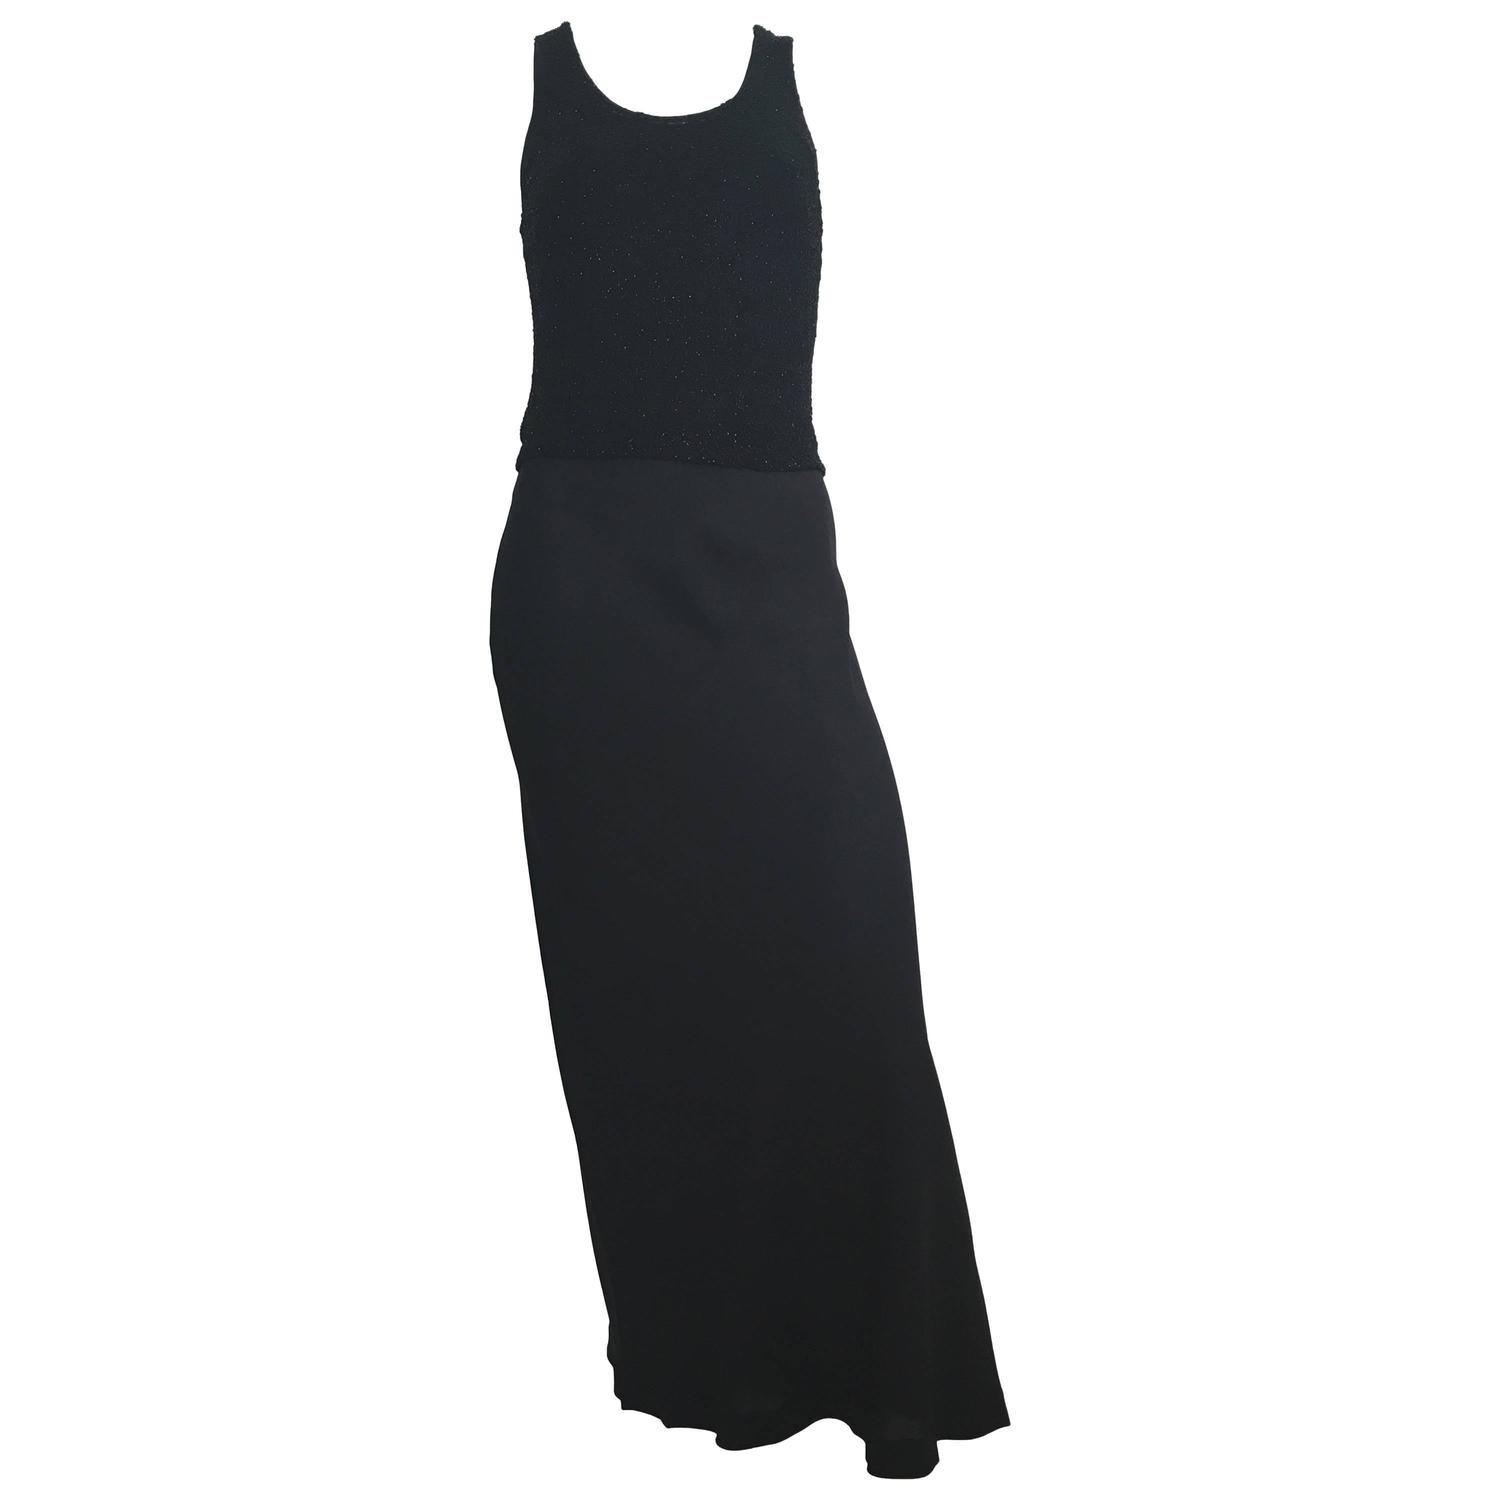 Donna Karan Black Silk Minimal Bias Cut Gown Size 4